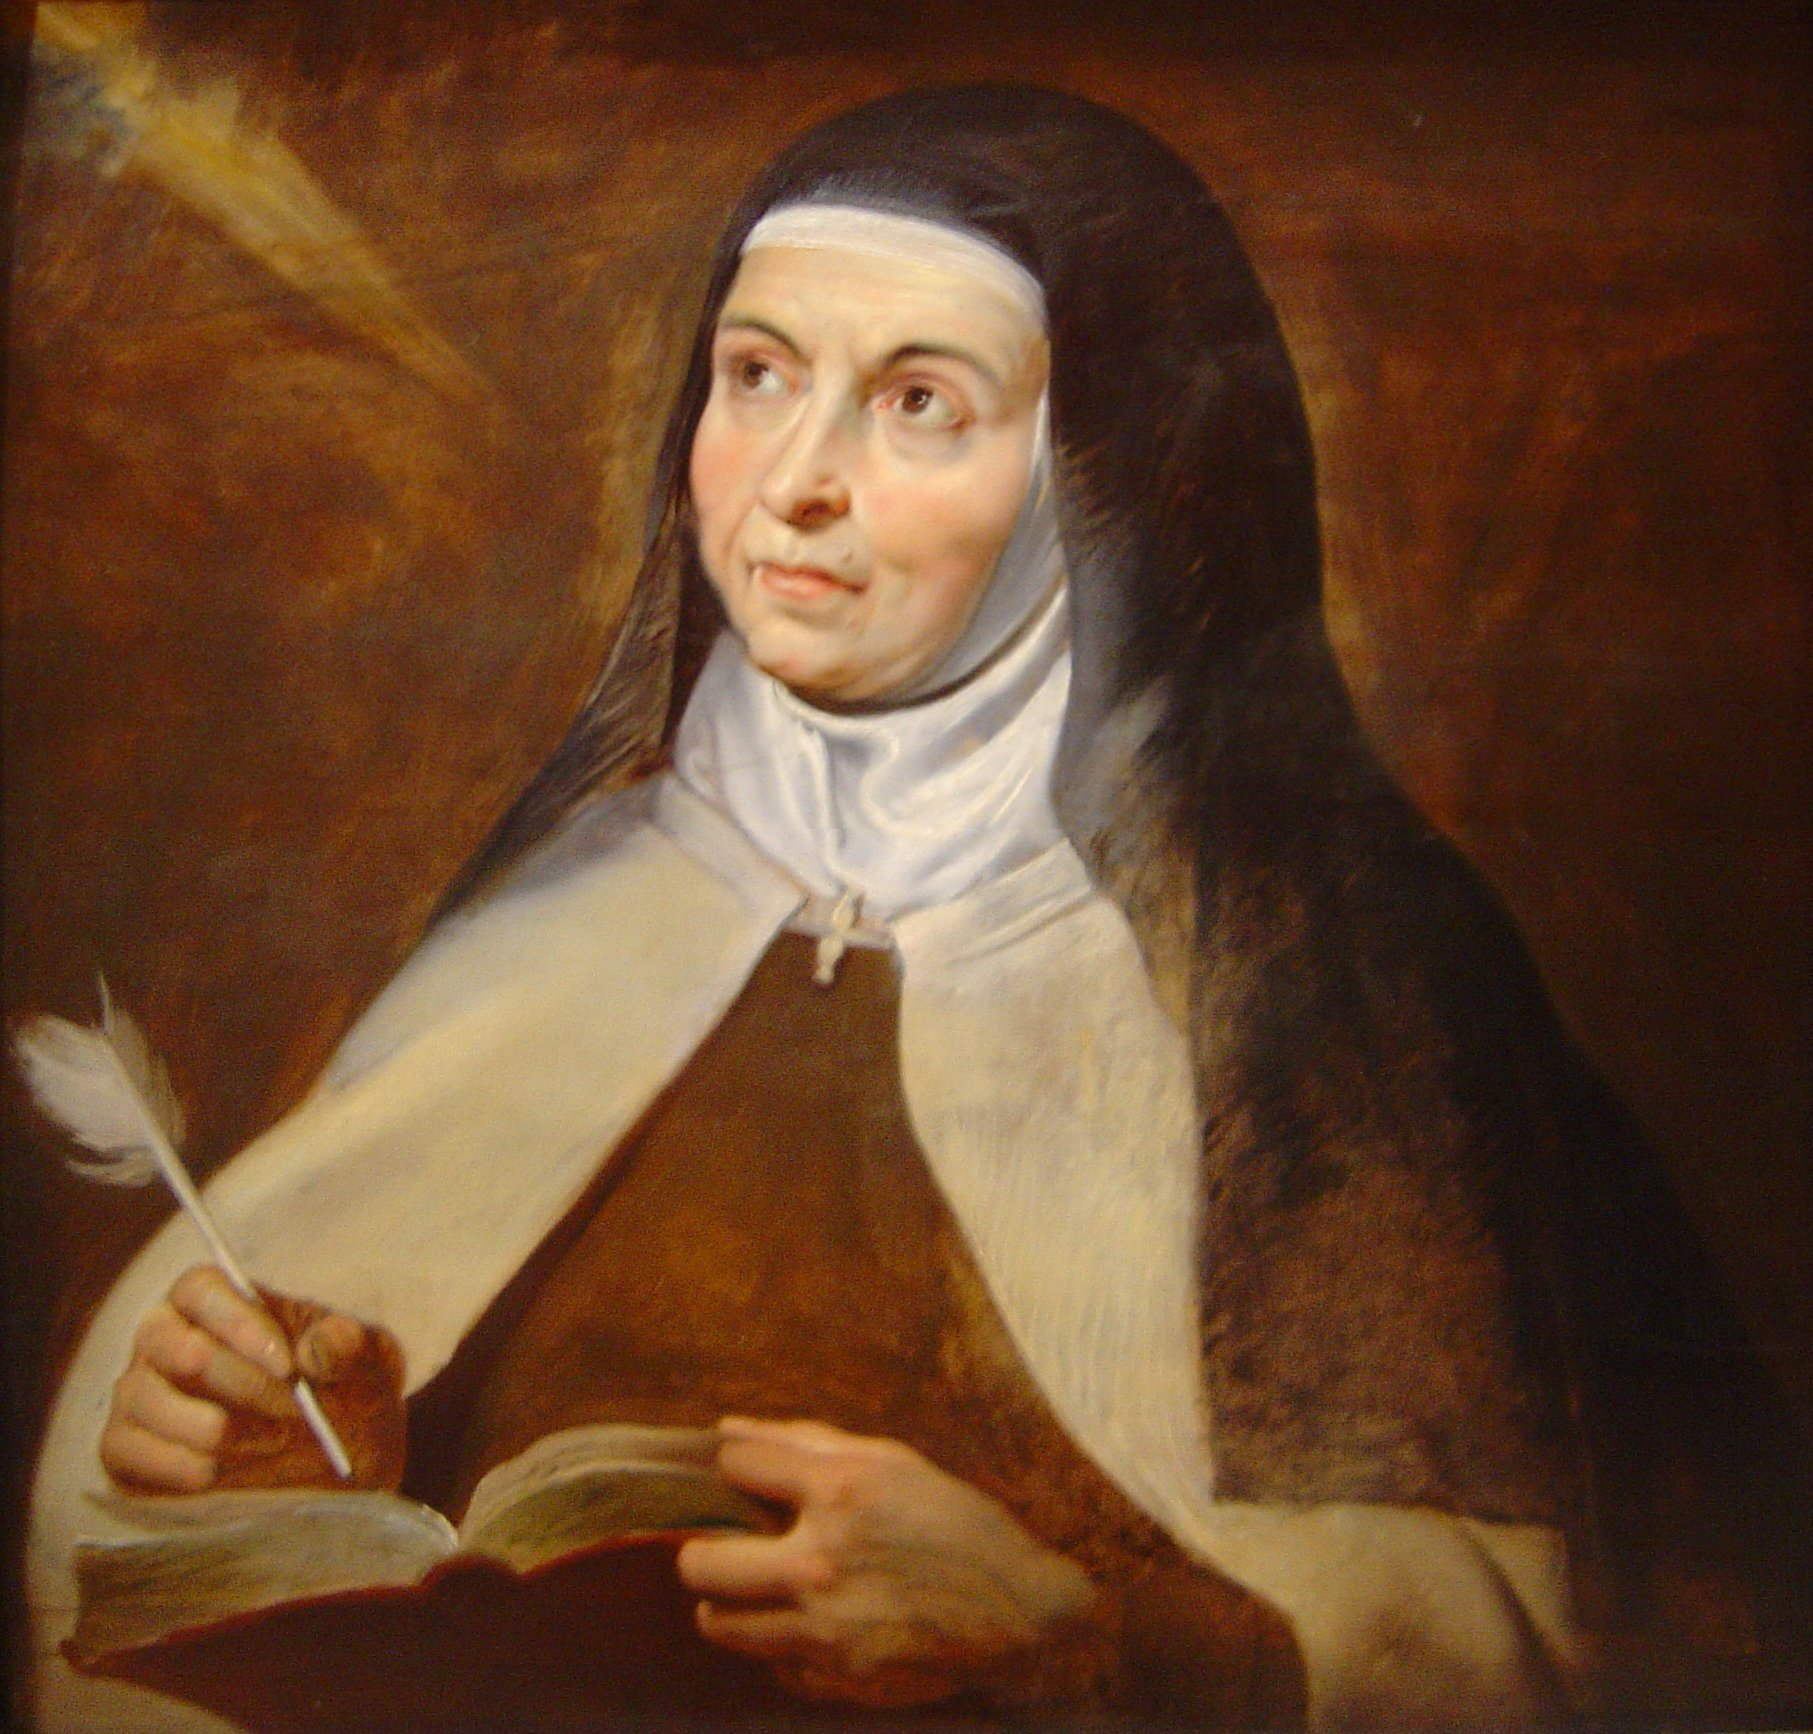 Portrait of St. Terese of Avila, by Peter Paul Ruebens, taken from Wikipedias article on her.